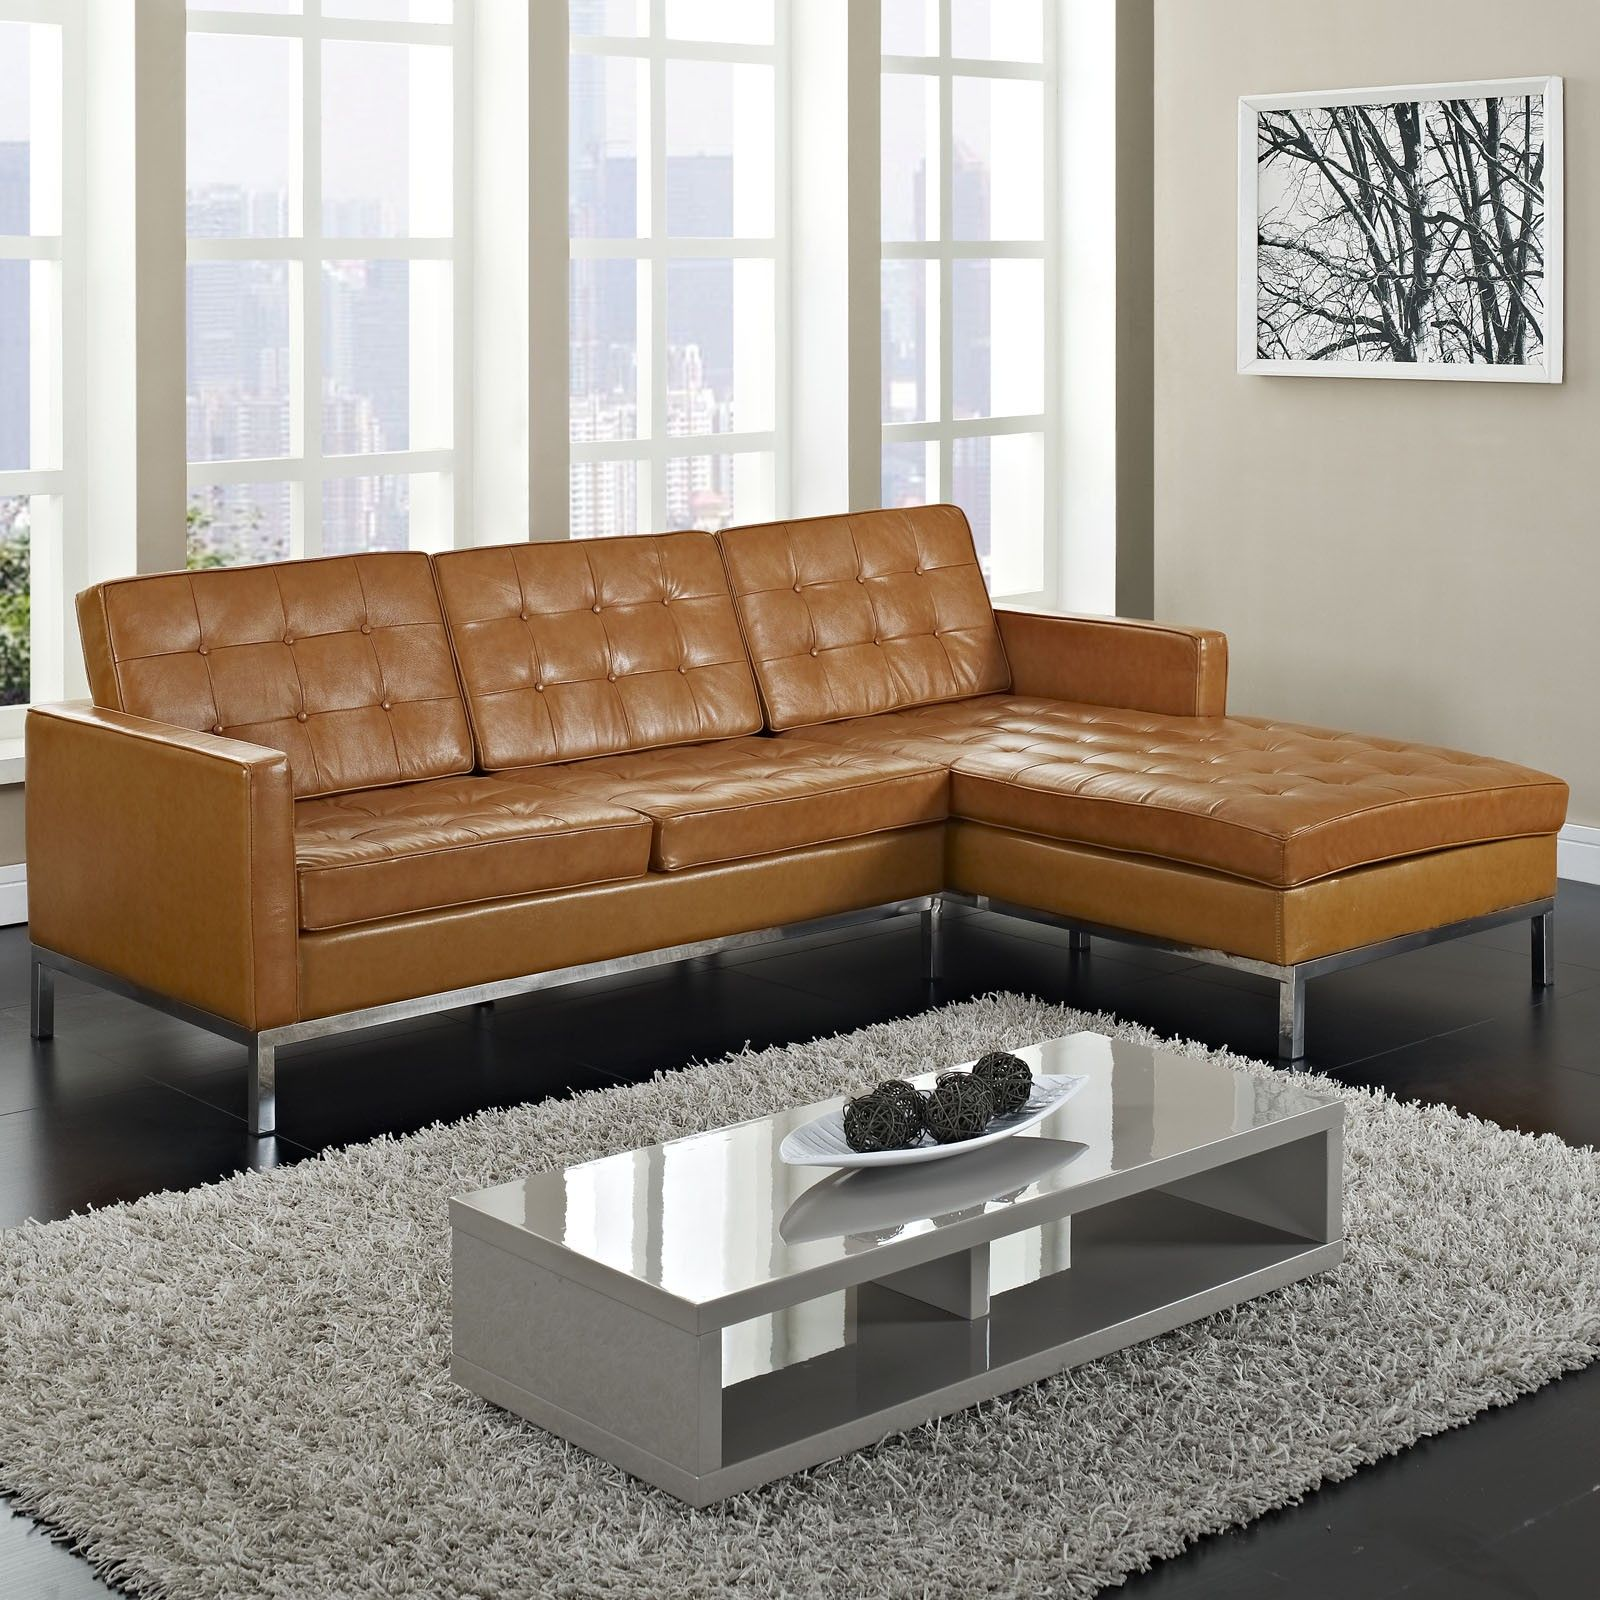 Brown leather living room furniture - Furniture Maximizing Small Living Room Spaces With 3 Piece Brown Leather Tufted Sectional Sofa With